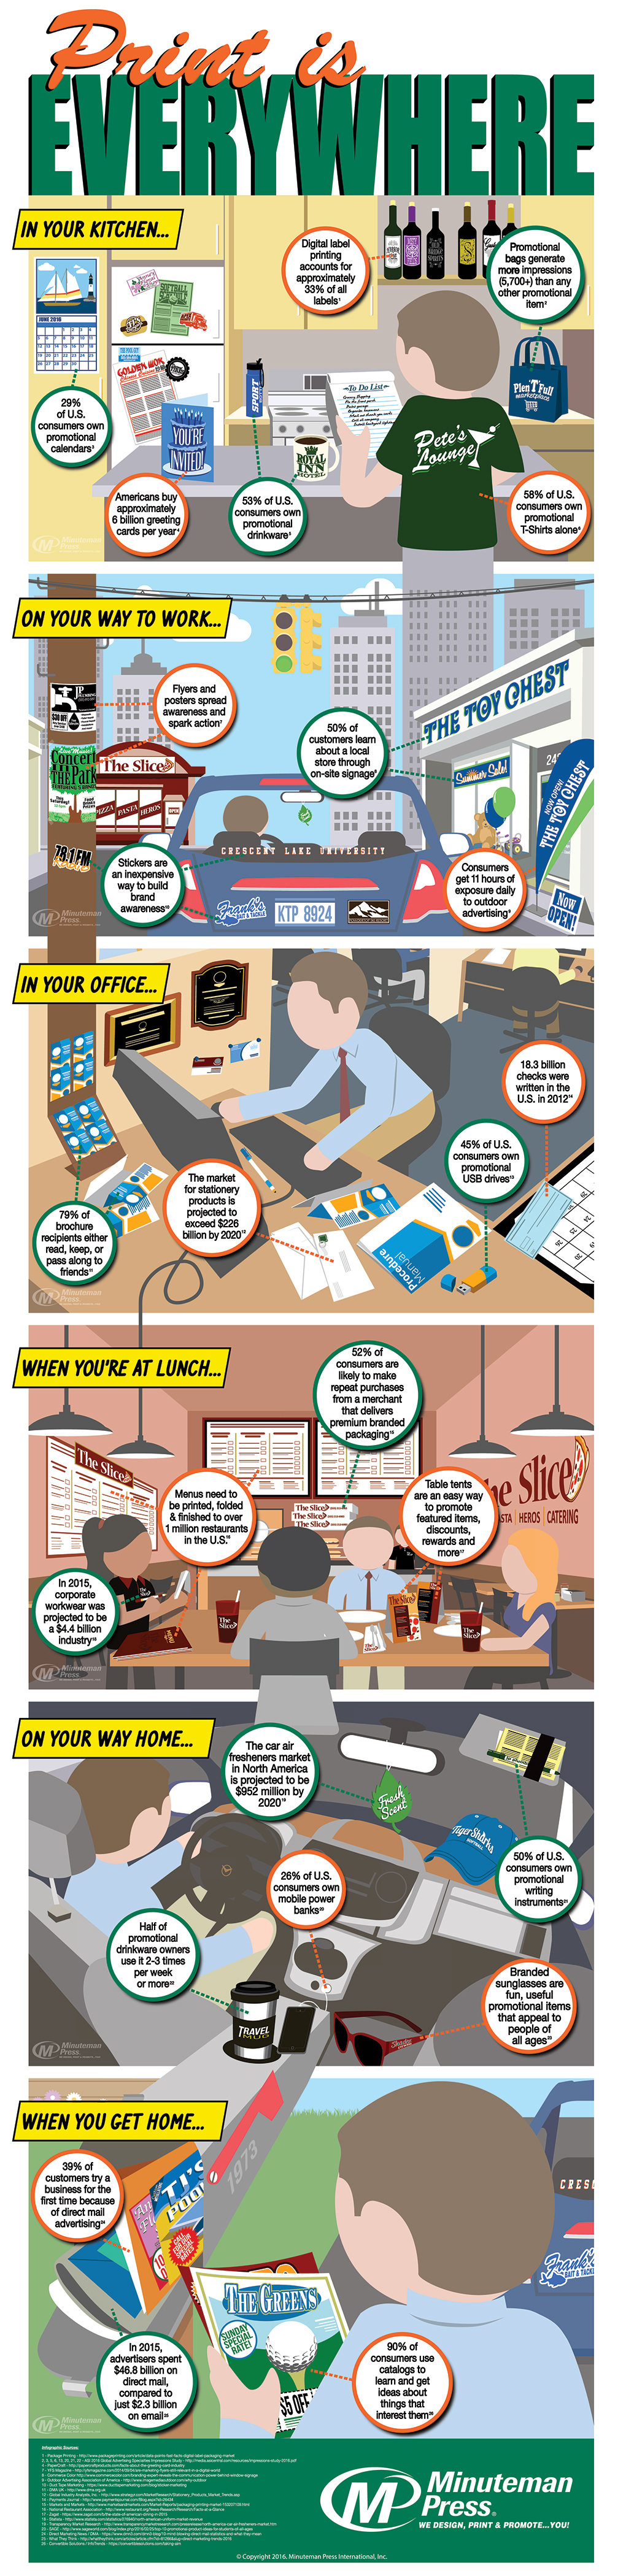 Minuteman Press International Releases New Infographic - Print is Everywhere! http://www.minutemanpressfranchise.com